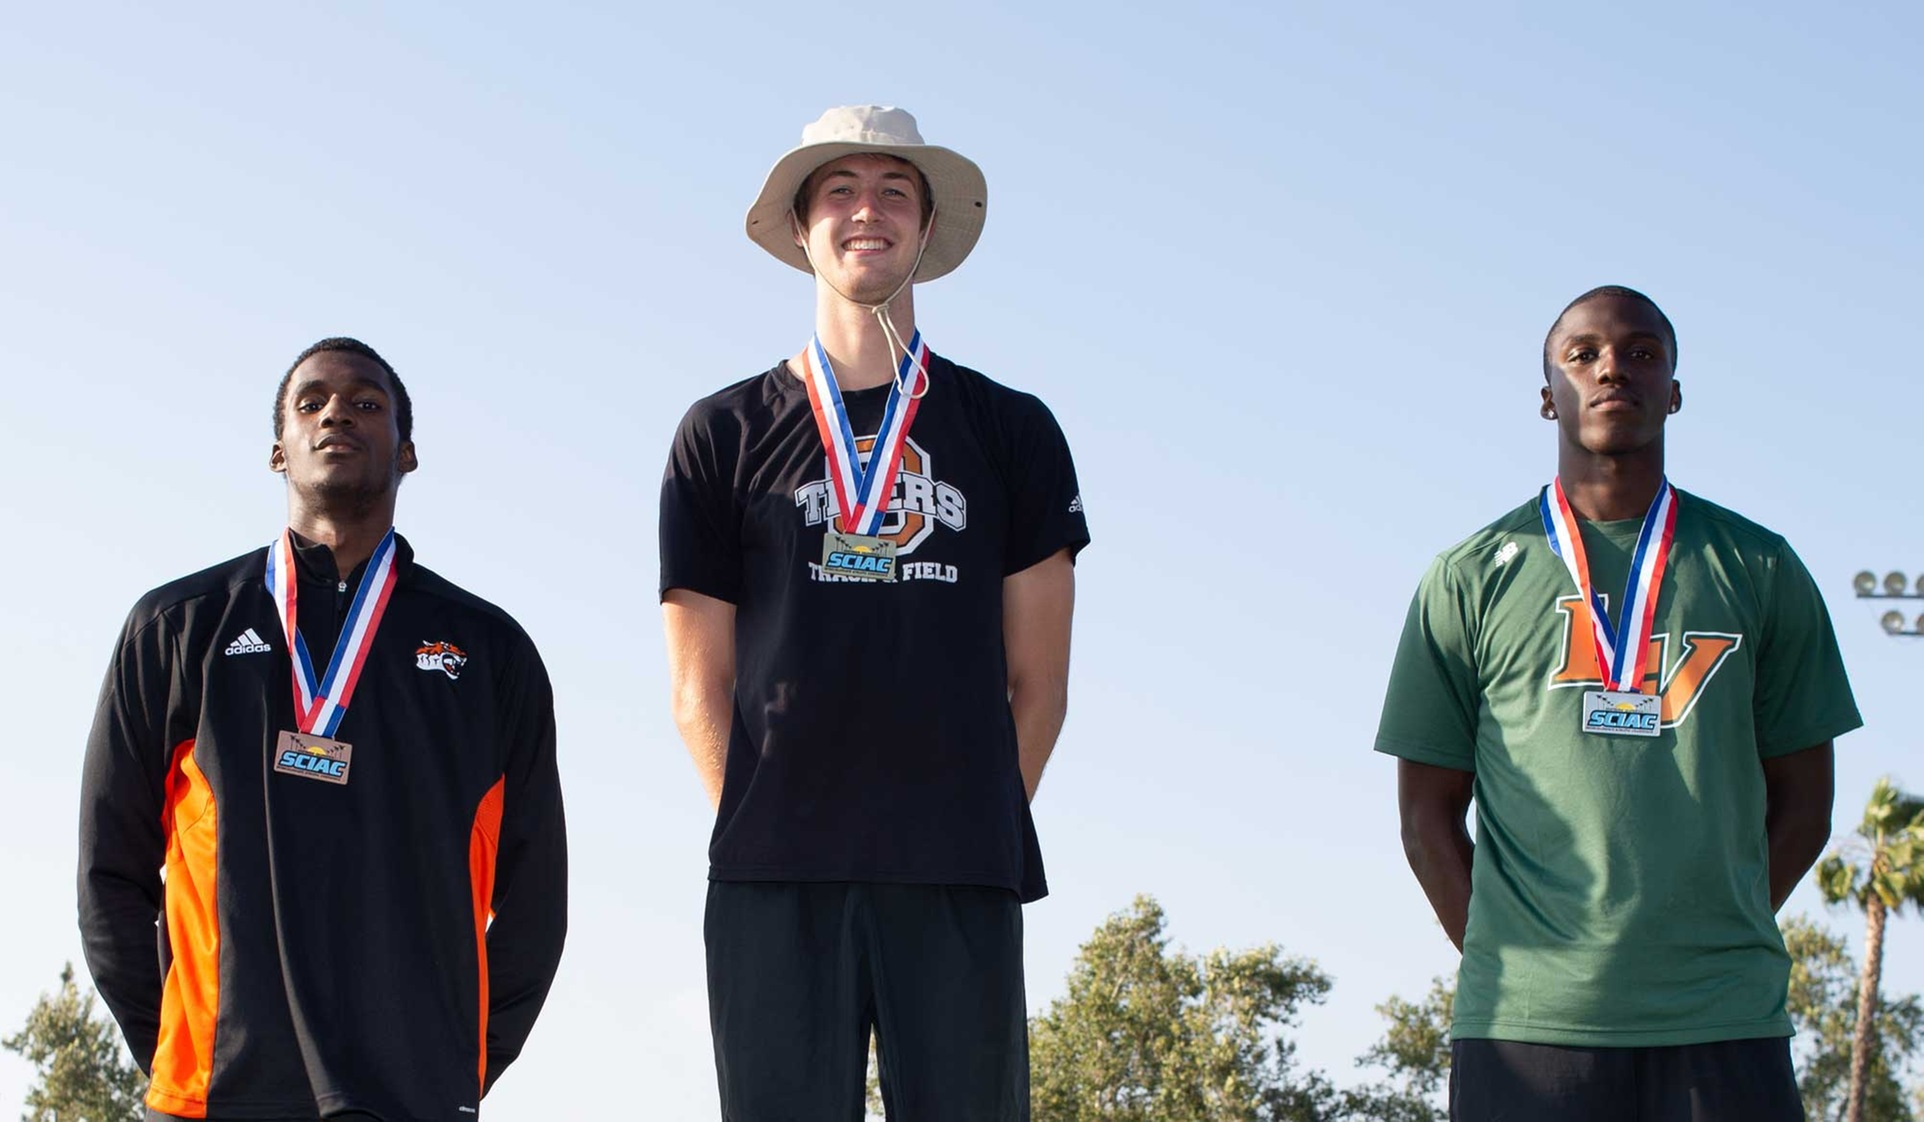 DeWitz Earns All-American Honors in High Jump